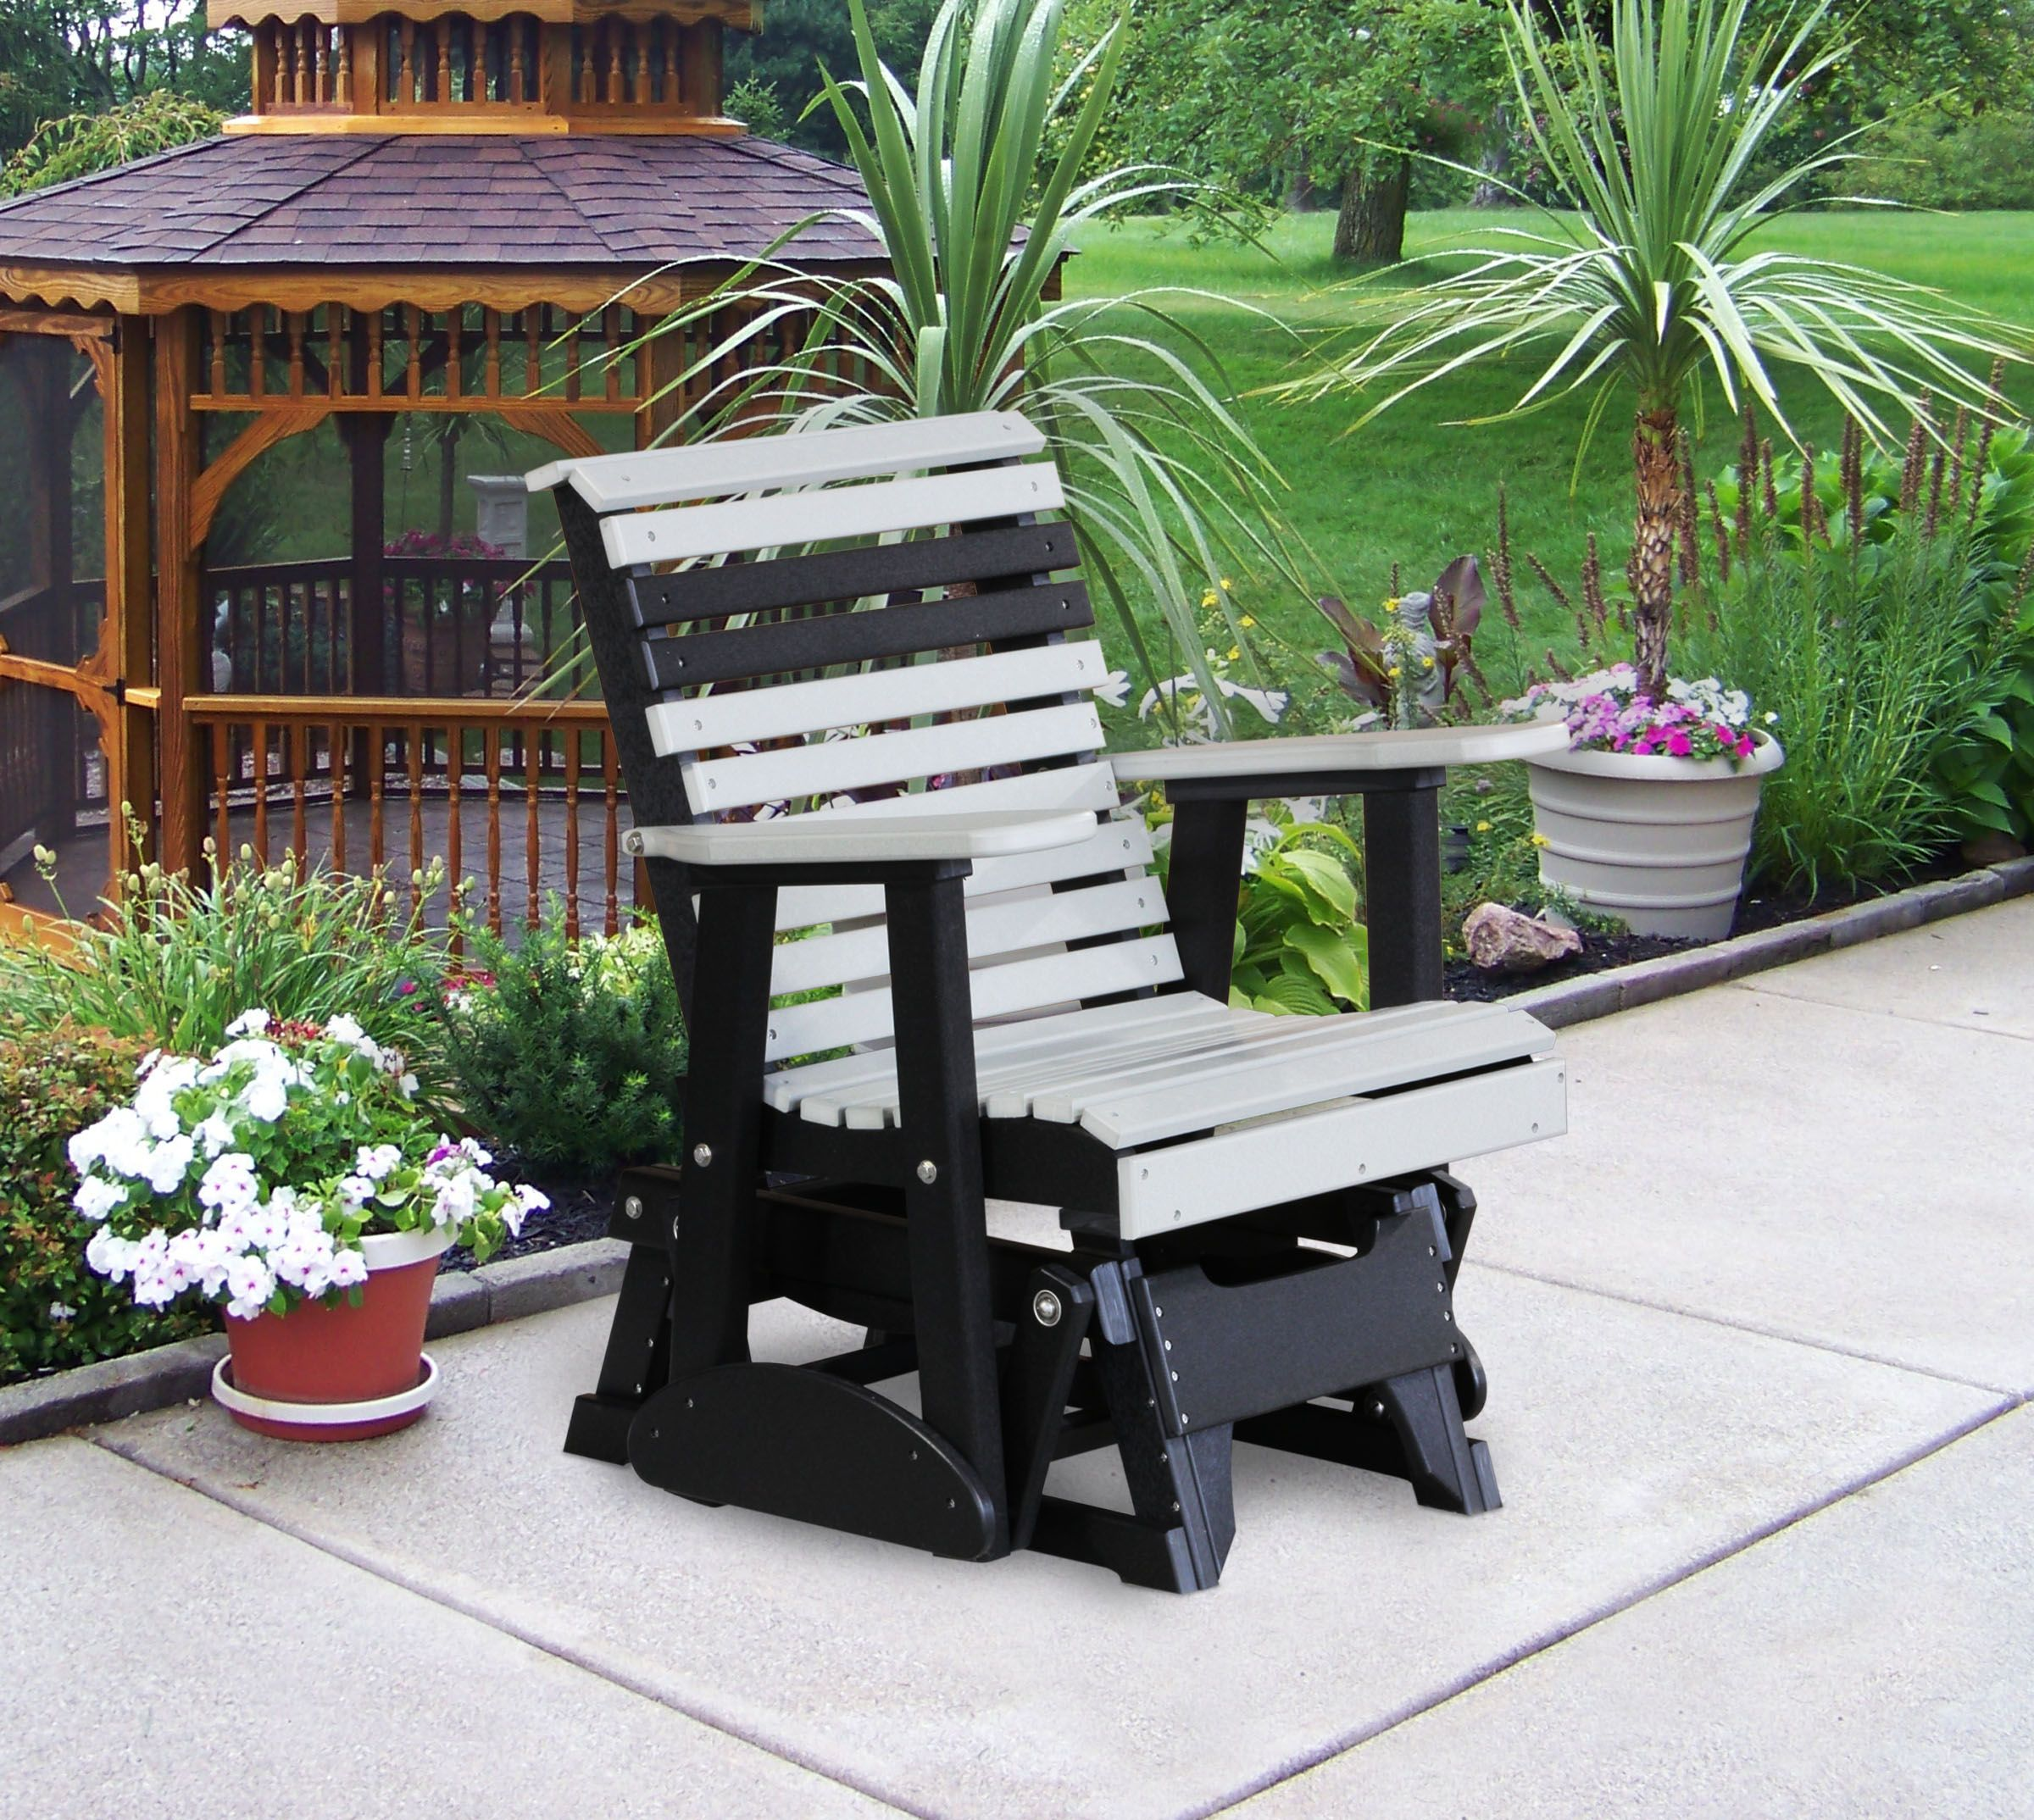 Ohio Glider Amish OUTDOOR Furniture Of Polyurethane TWO Foot Roll Back  Glider Chair Which Will Last